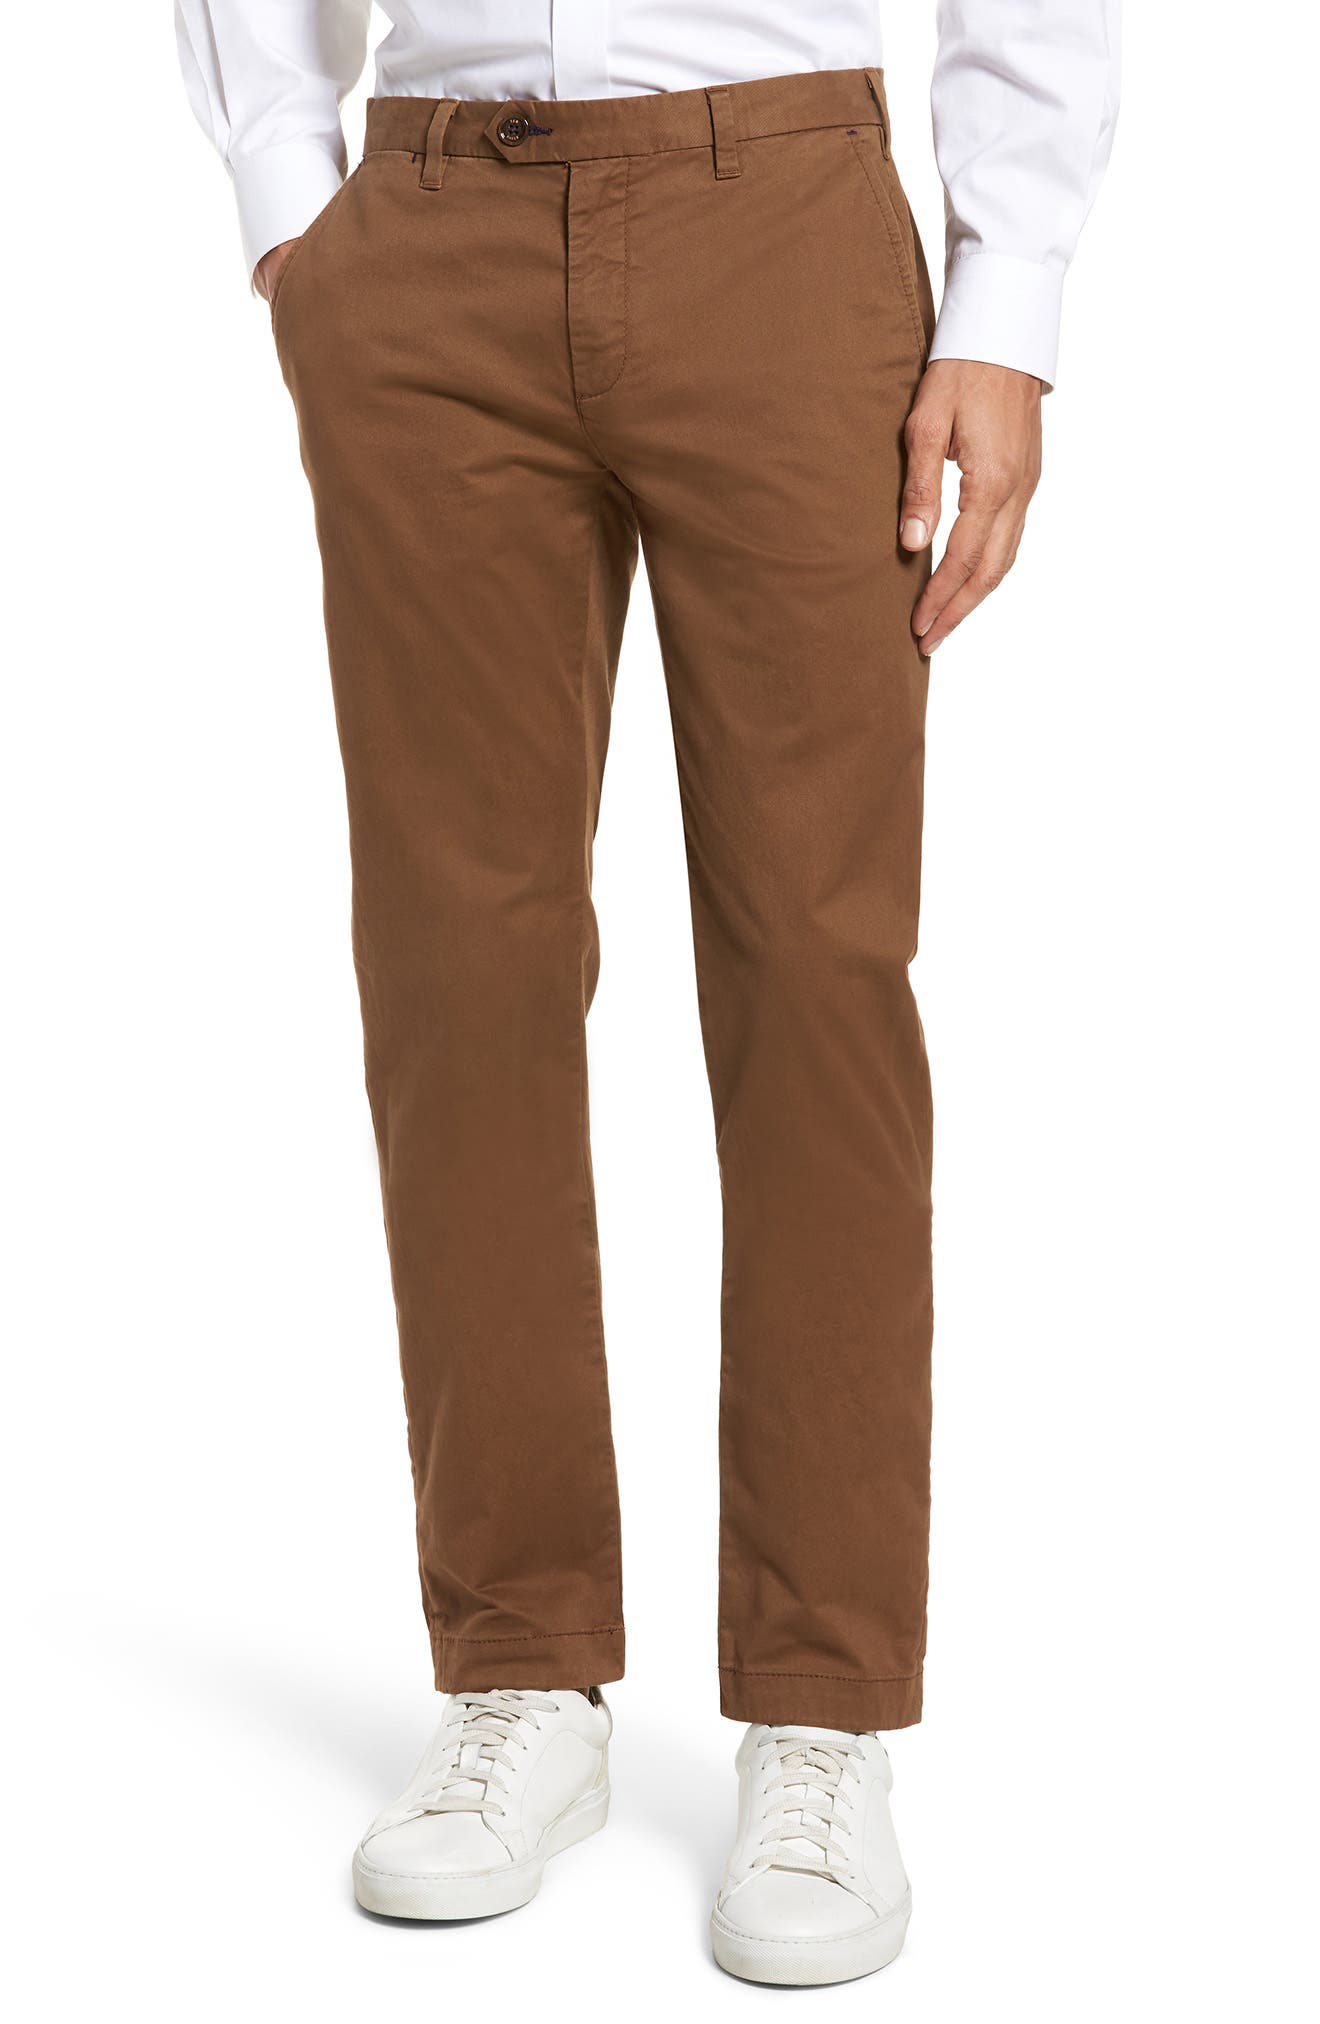 Proctt Flat Front Stretch Solid Cotton Pants,                         Main,                         color, TAN